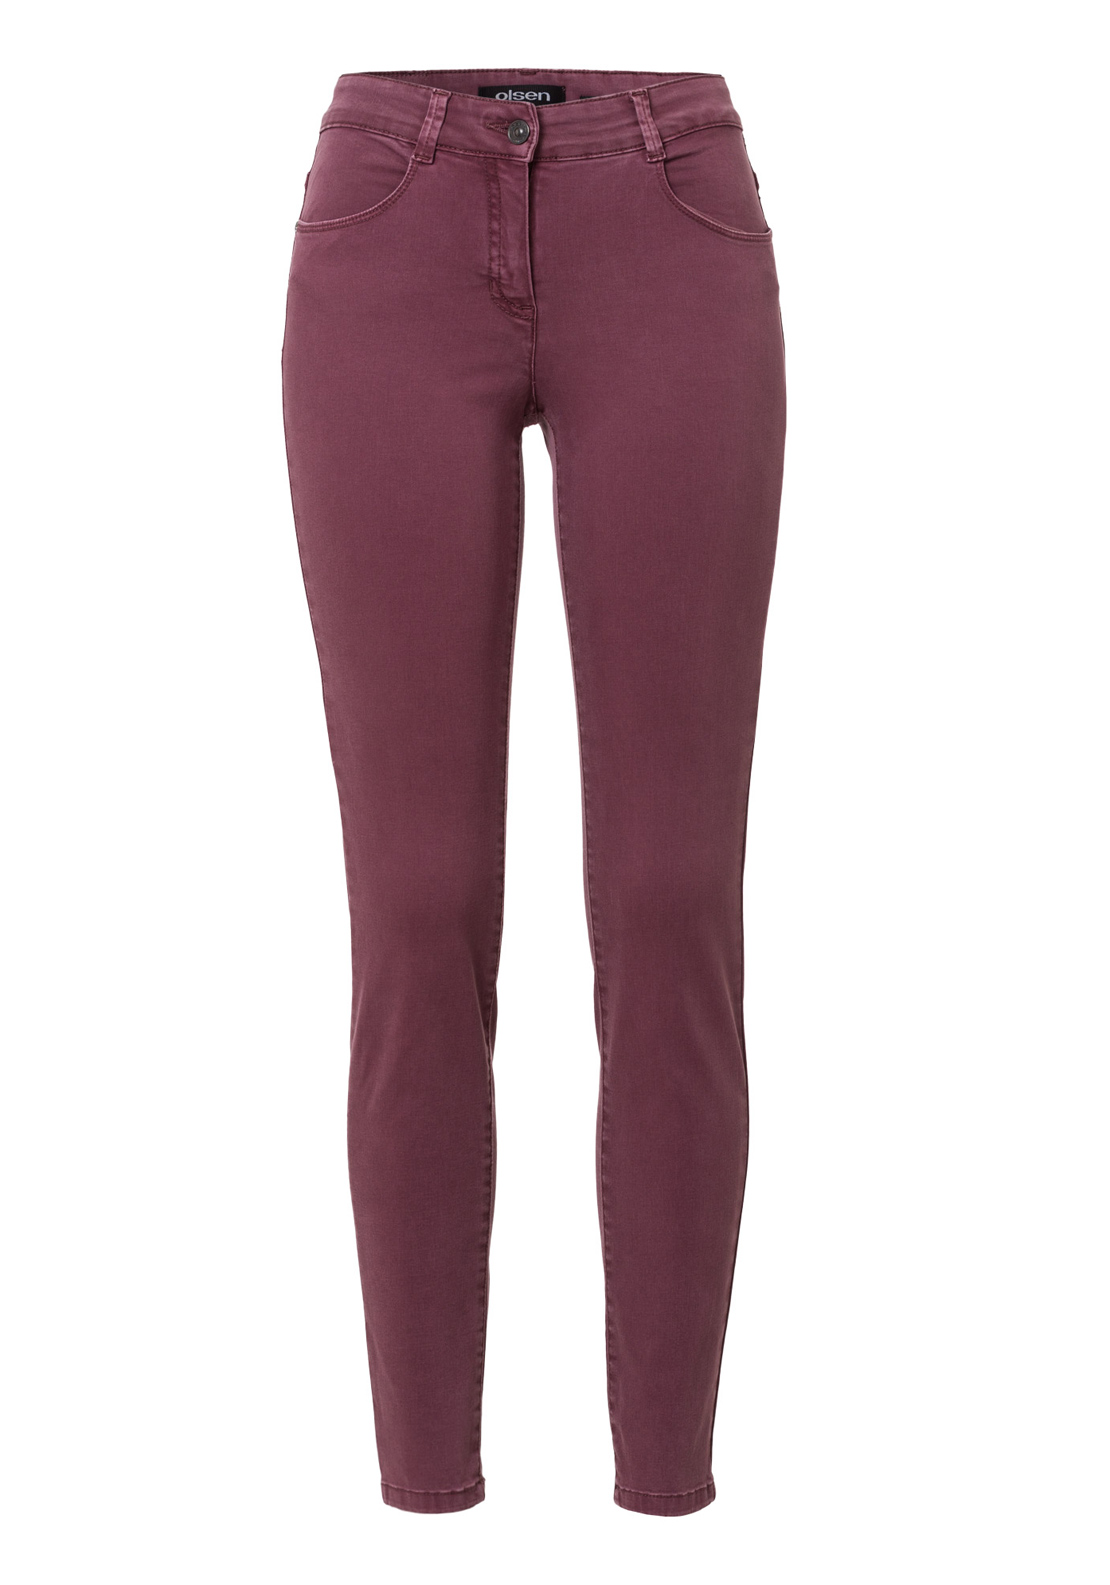 Olsen Dana Slim Fit Power Stretch Jeans, Plum